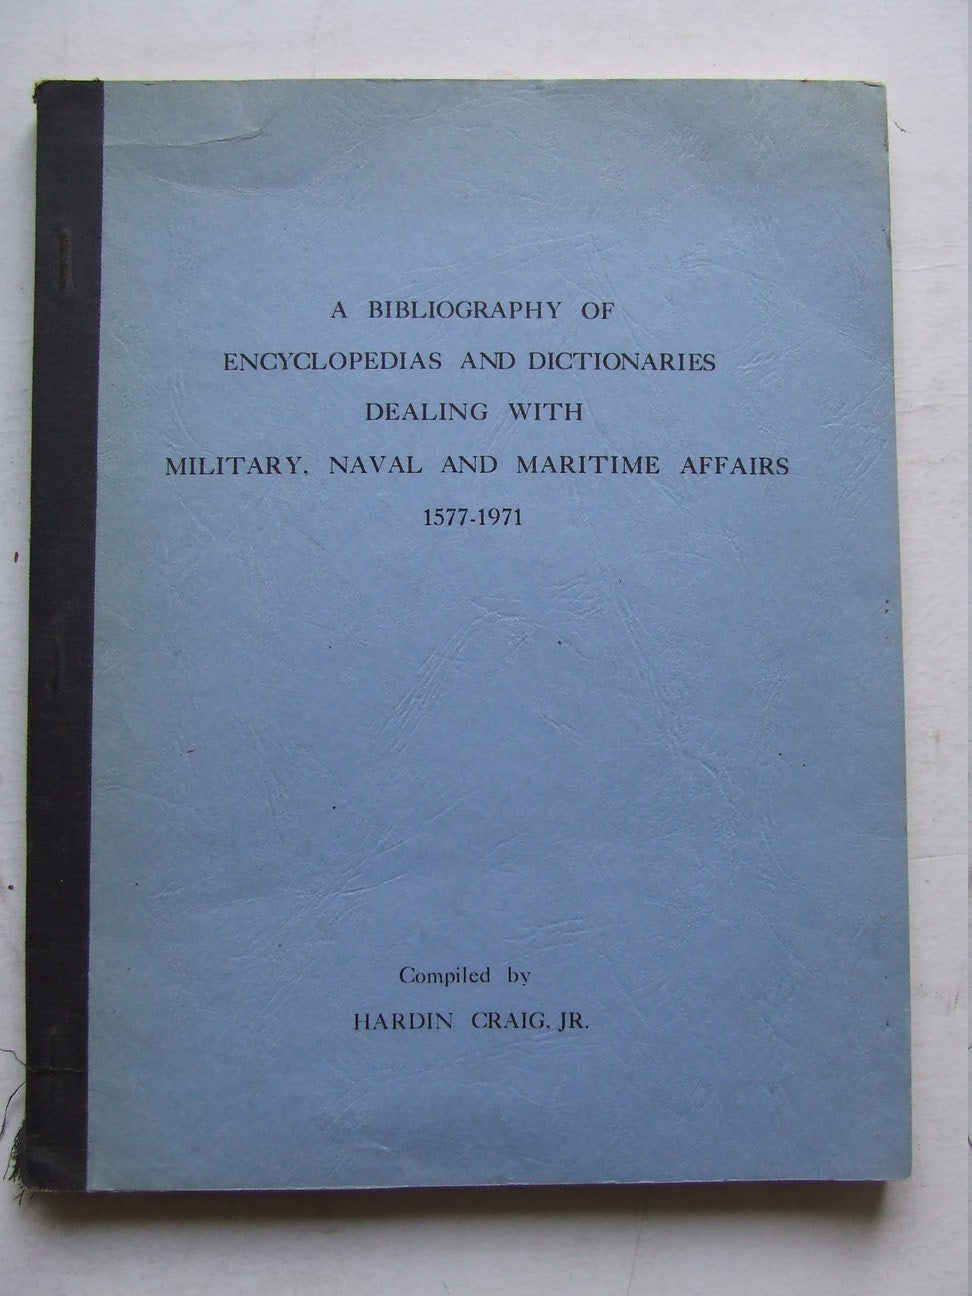 Bibliography of Encyclopedias and Dictionaries dealing with Military, Naval and Maritime  Matters 1577-1971